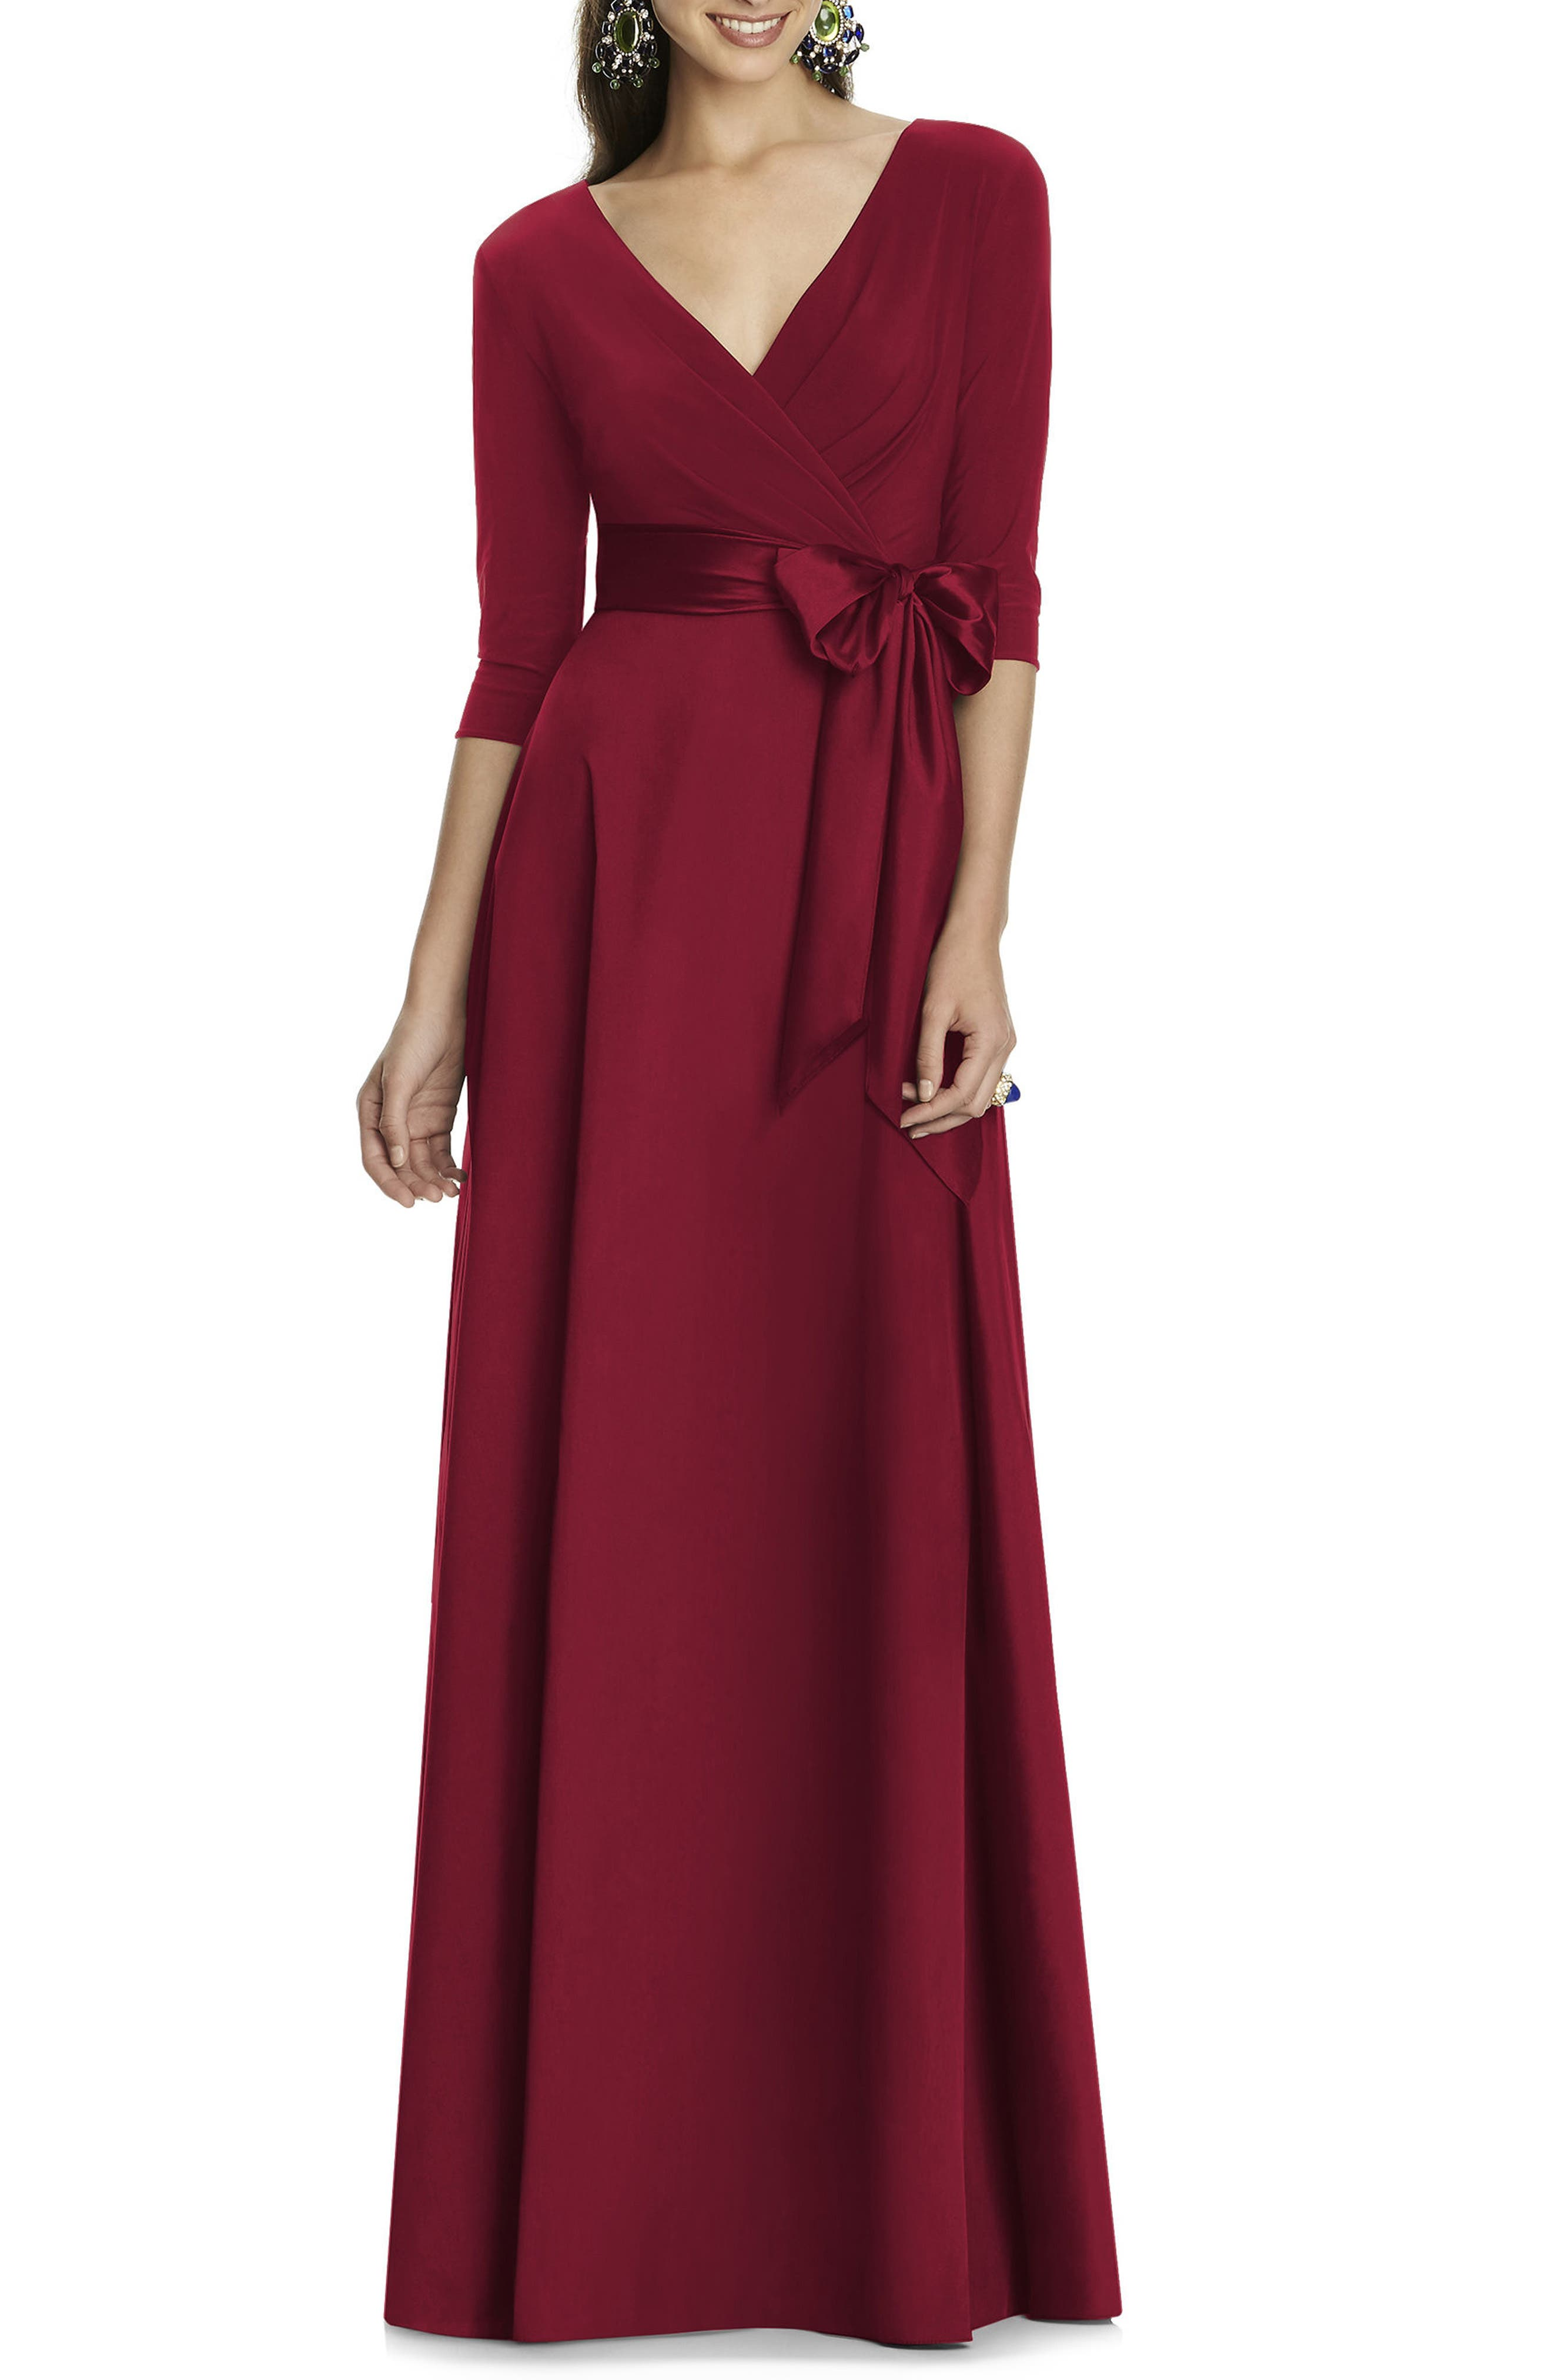 1940s Evening, Prom, Party, Formal, Ball Gowns Womens Alfred Sung Jersey  Mikado A-Line Gown Size 4 - Burgundy $229.00 AT vintagedancer.com